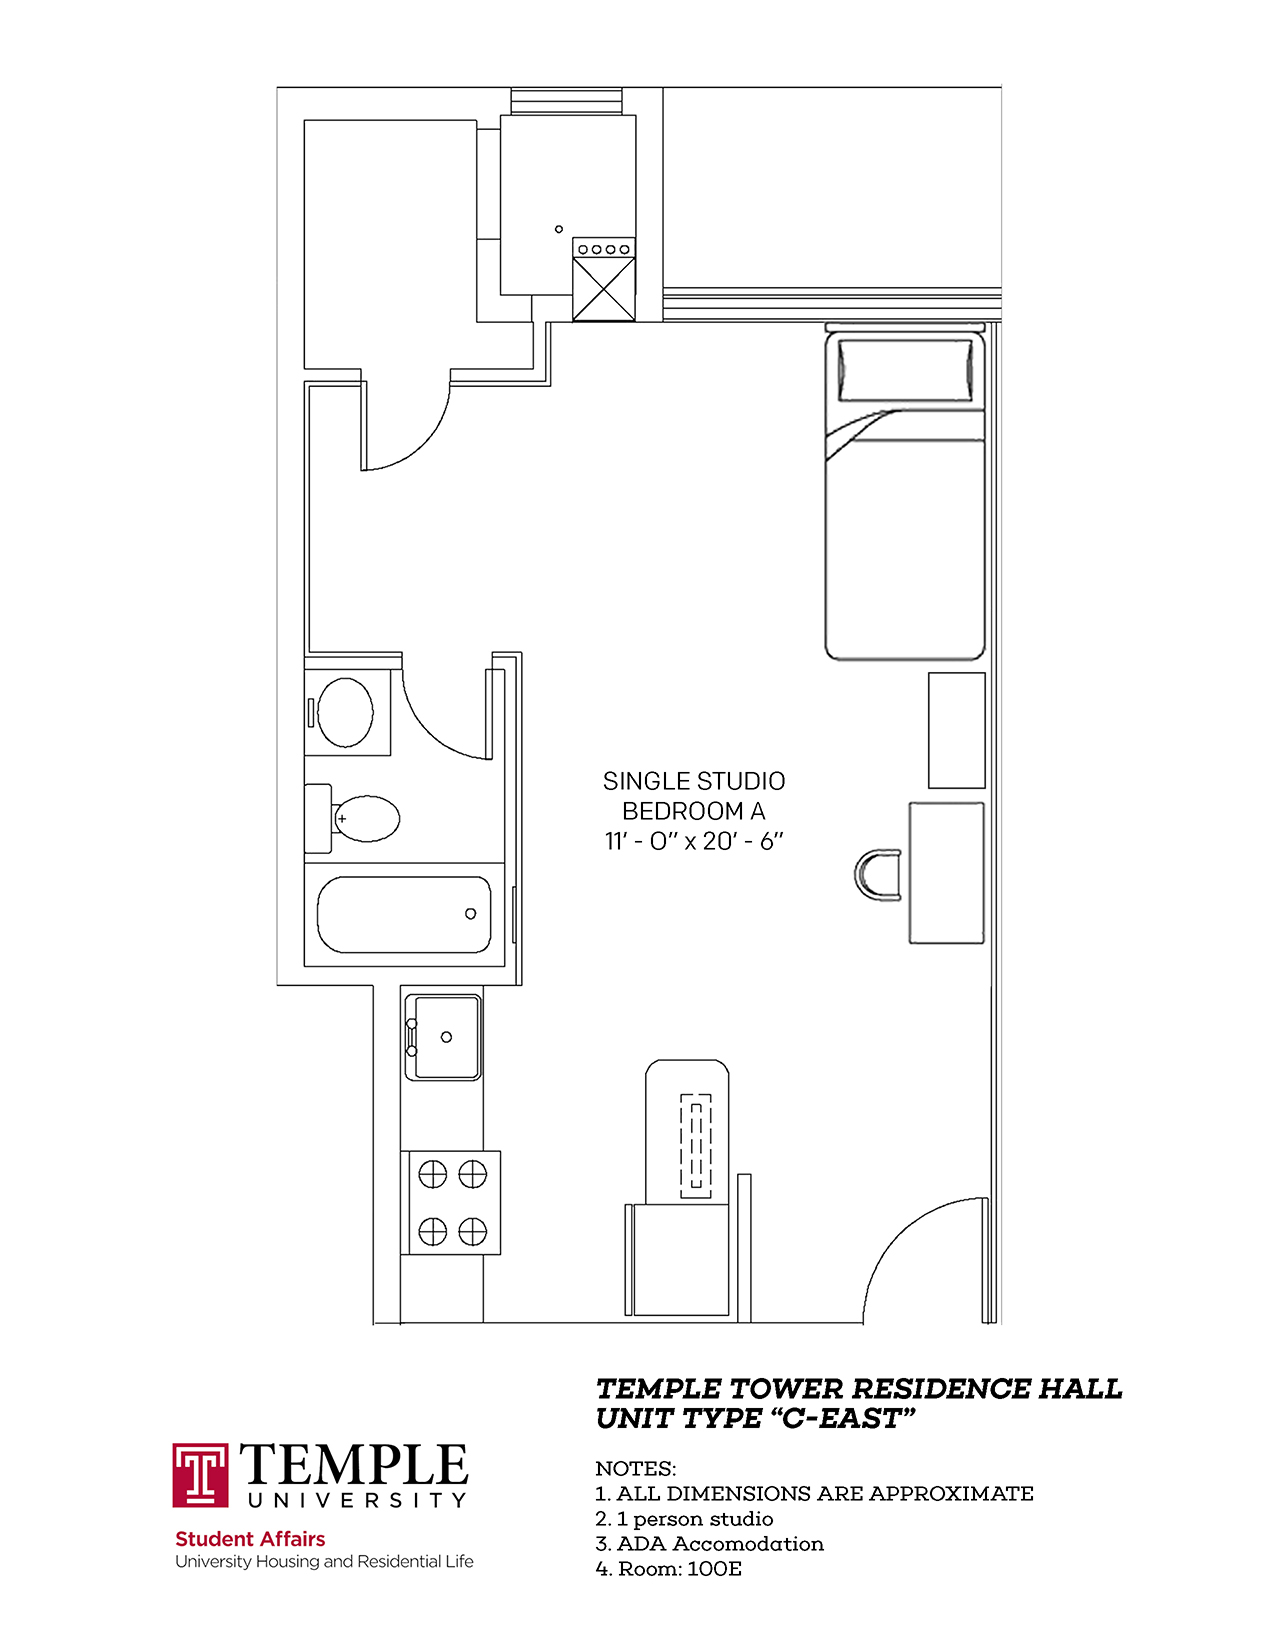 Temple Towers: Unit C East - 1 person, Studio Apartment